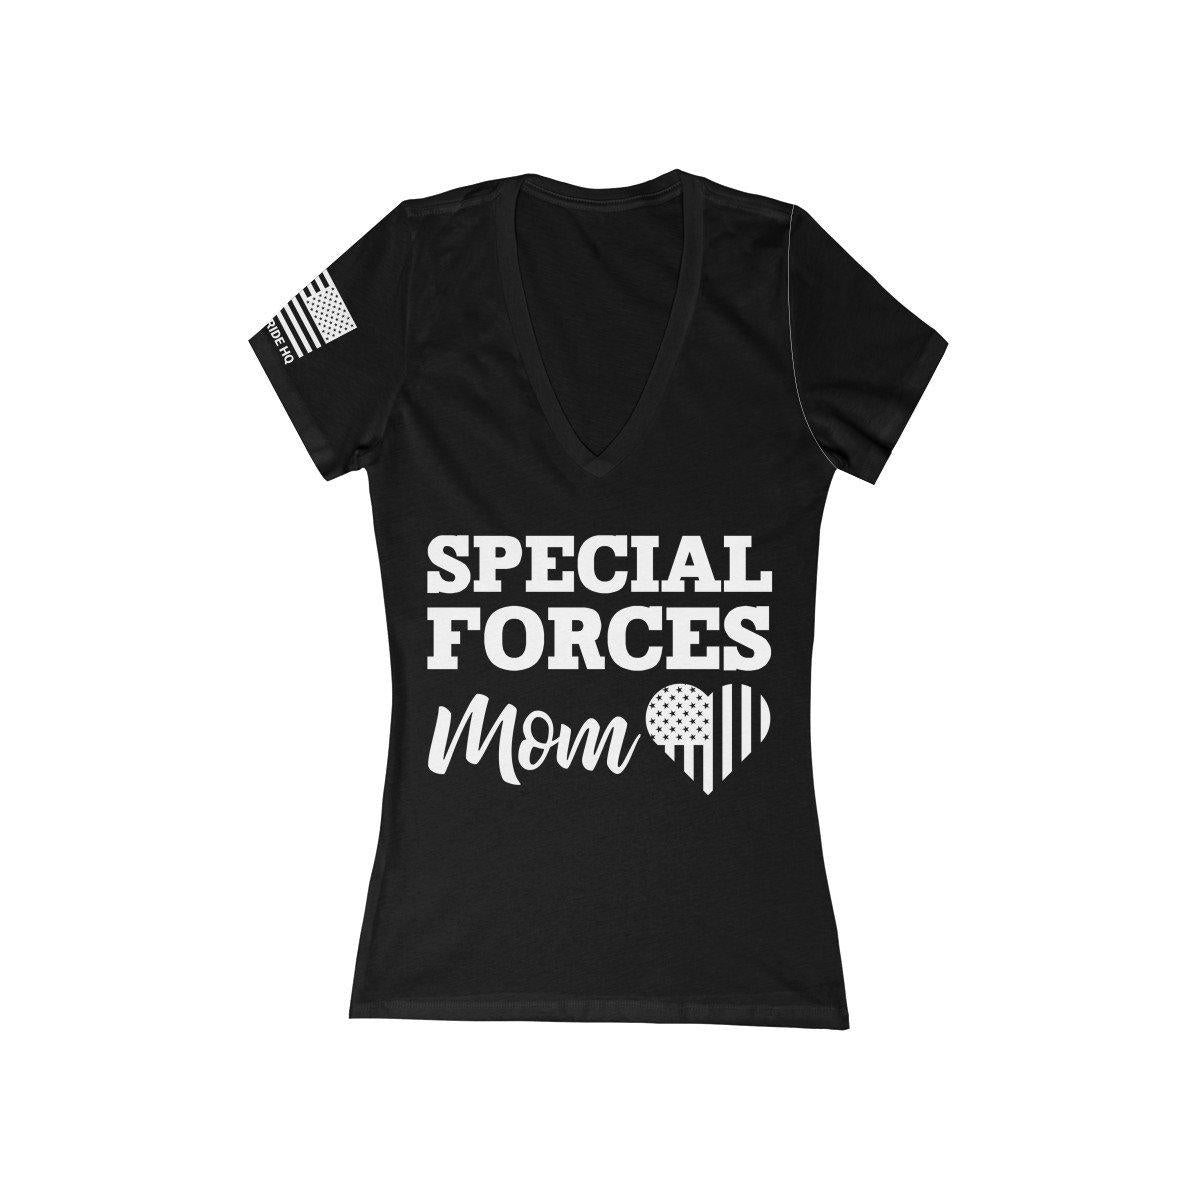 Special Forces Mom Women's V-Neck Tee